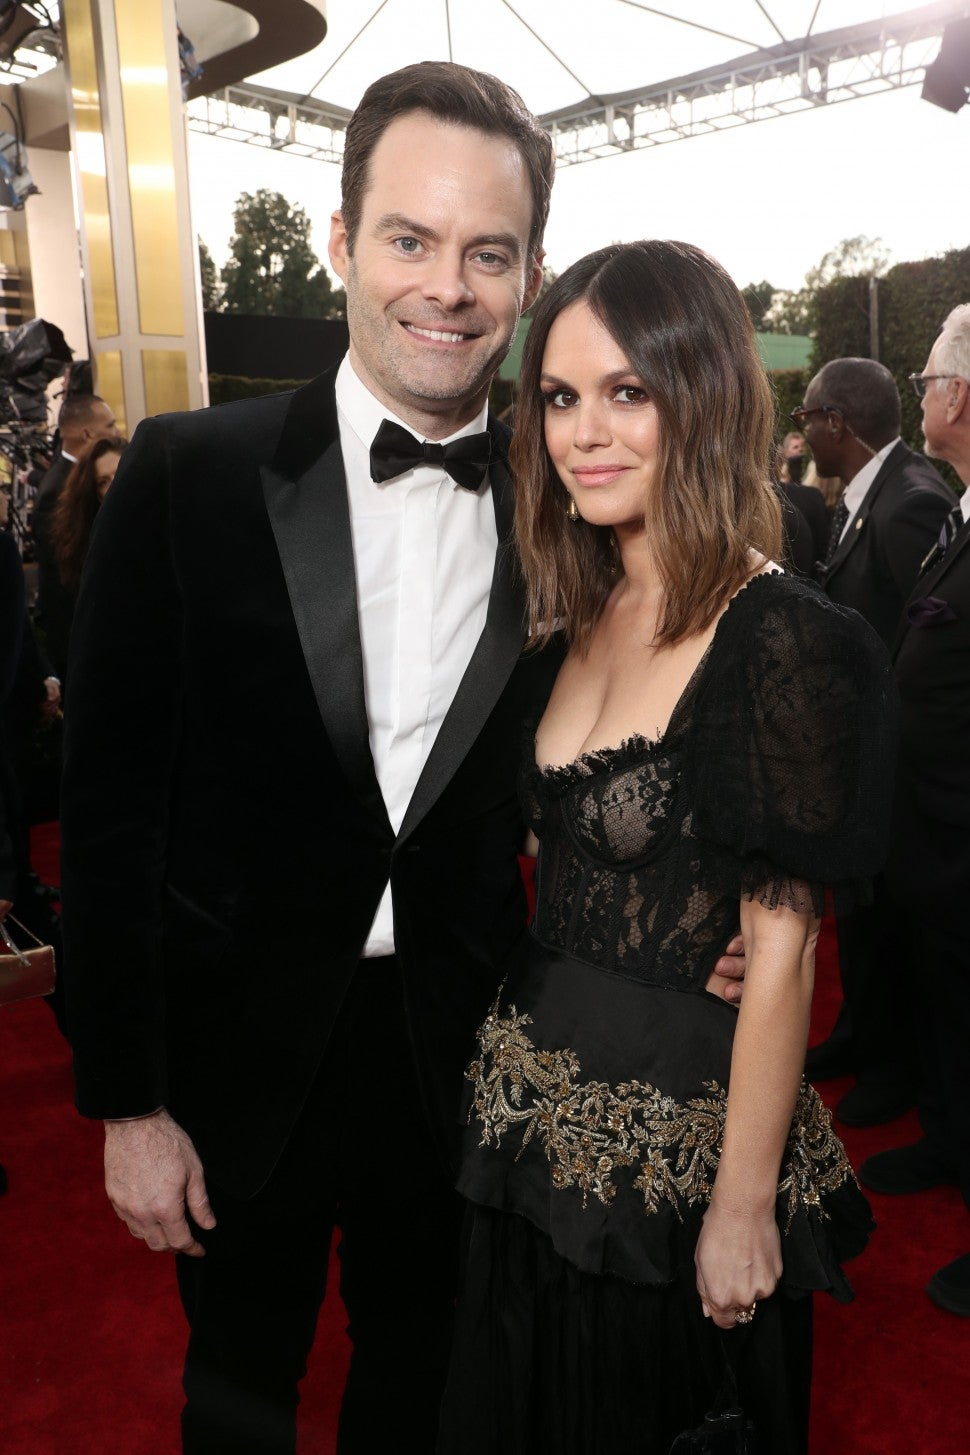 Bill Hader and Rachel Bilson 2020 golden globes